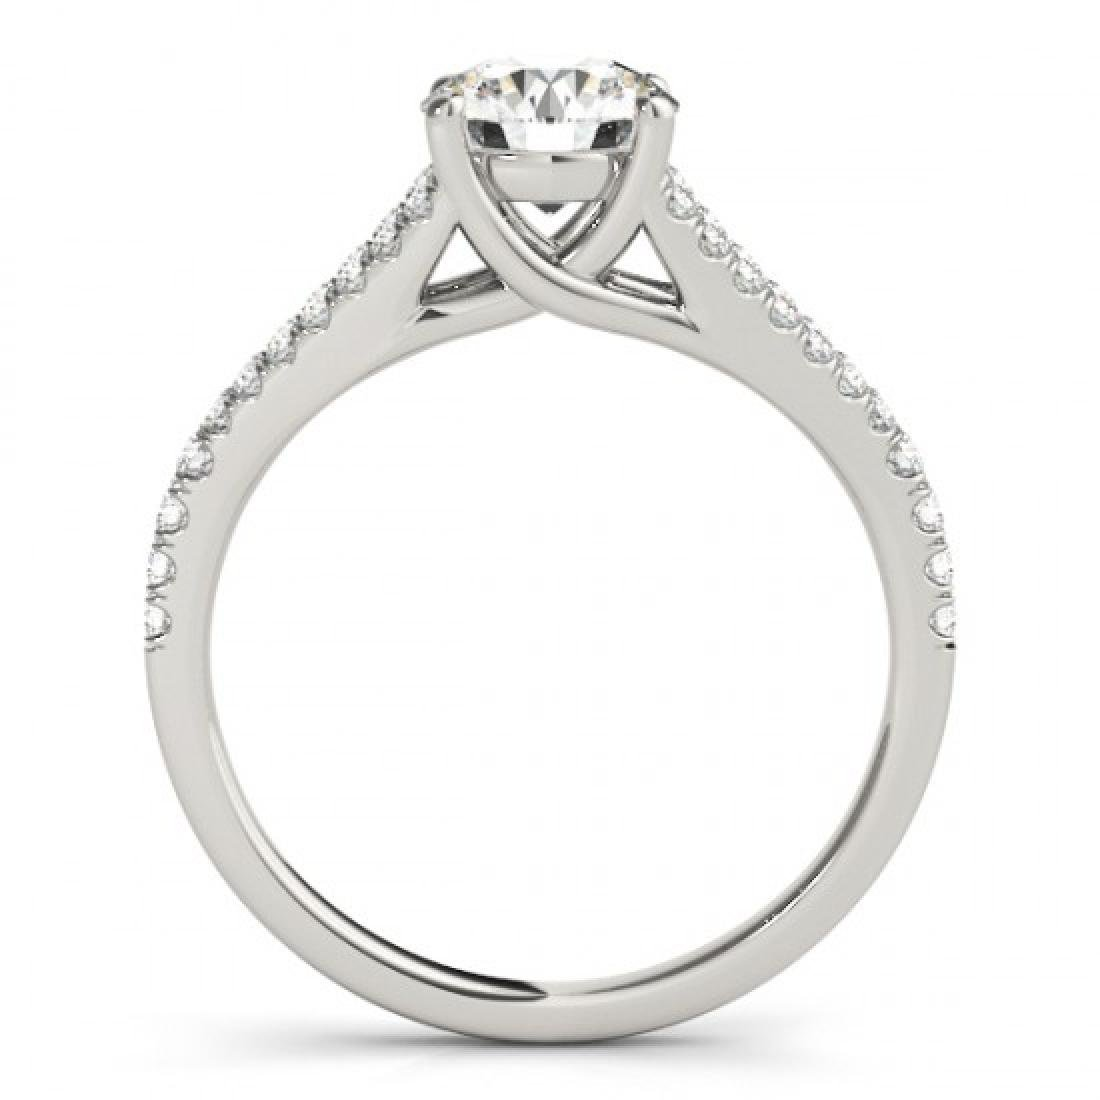 1 CTW Certified VS/SI Diamond Solitaire Ring 14K White - 2